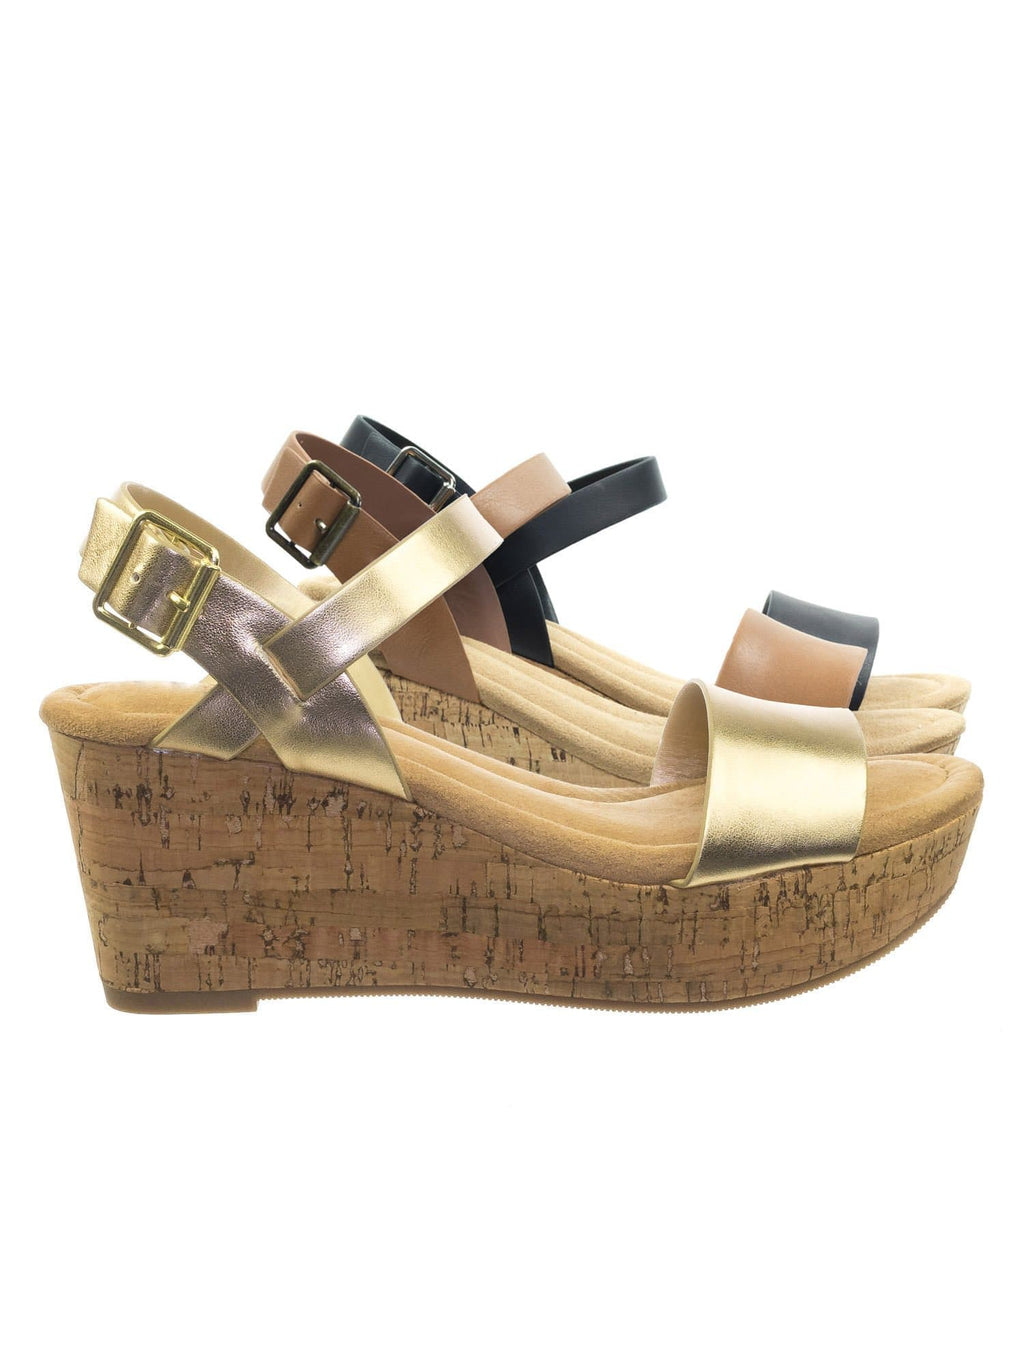 Air LtGoldCork Cork Platform Wedge Sandal w Soft Comfortable Foam Padding